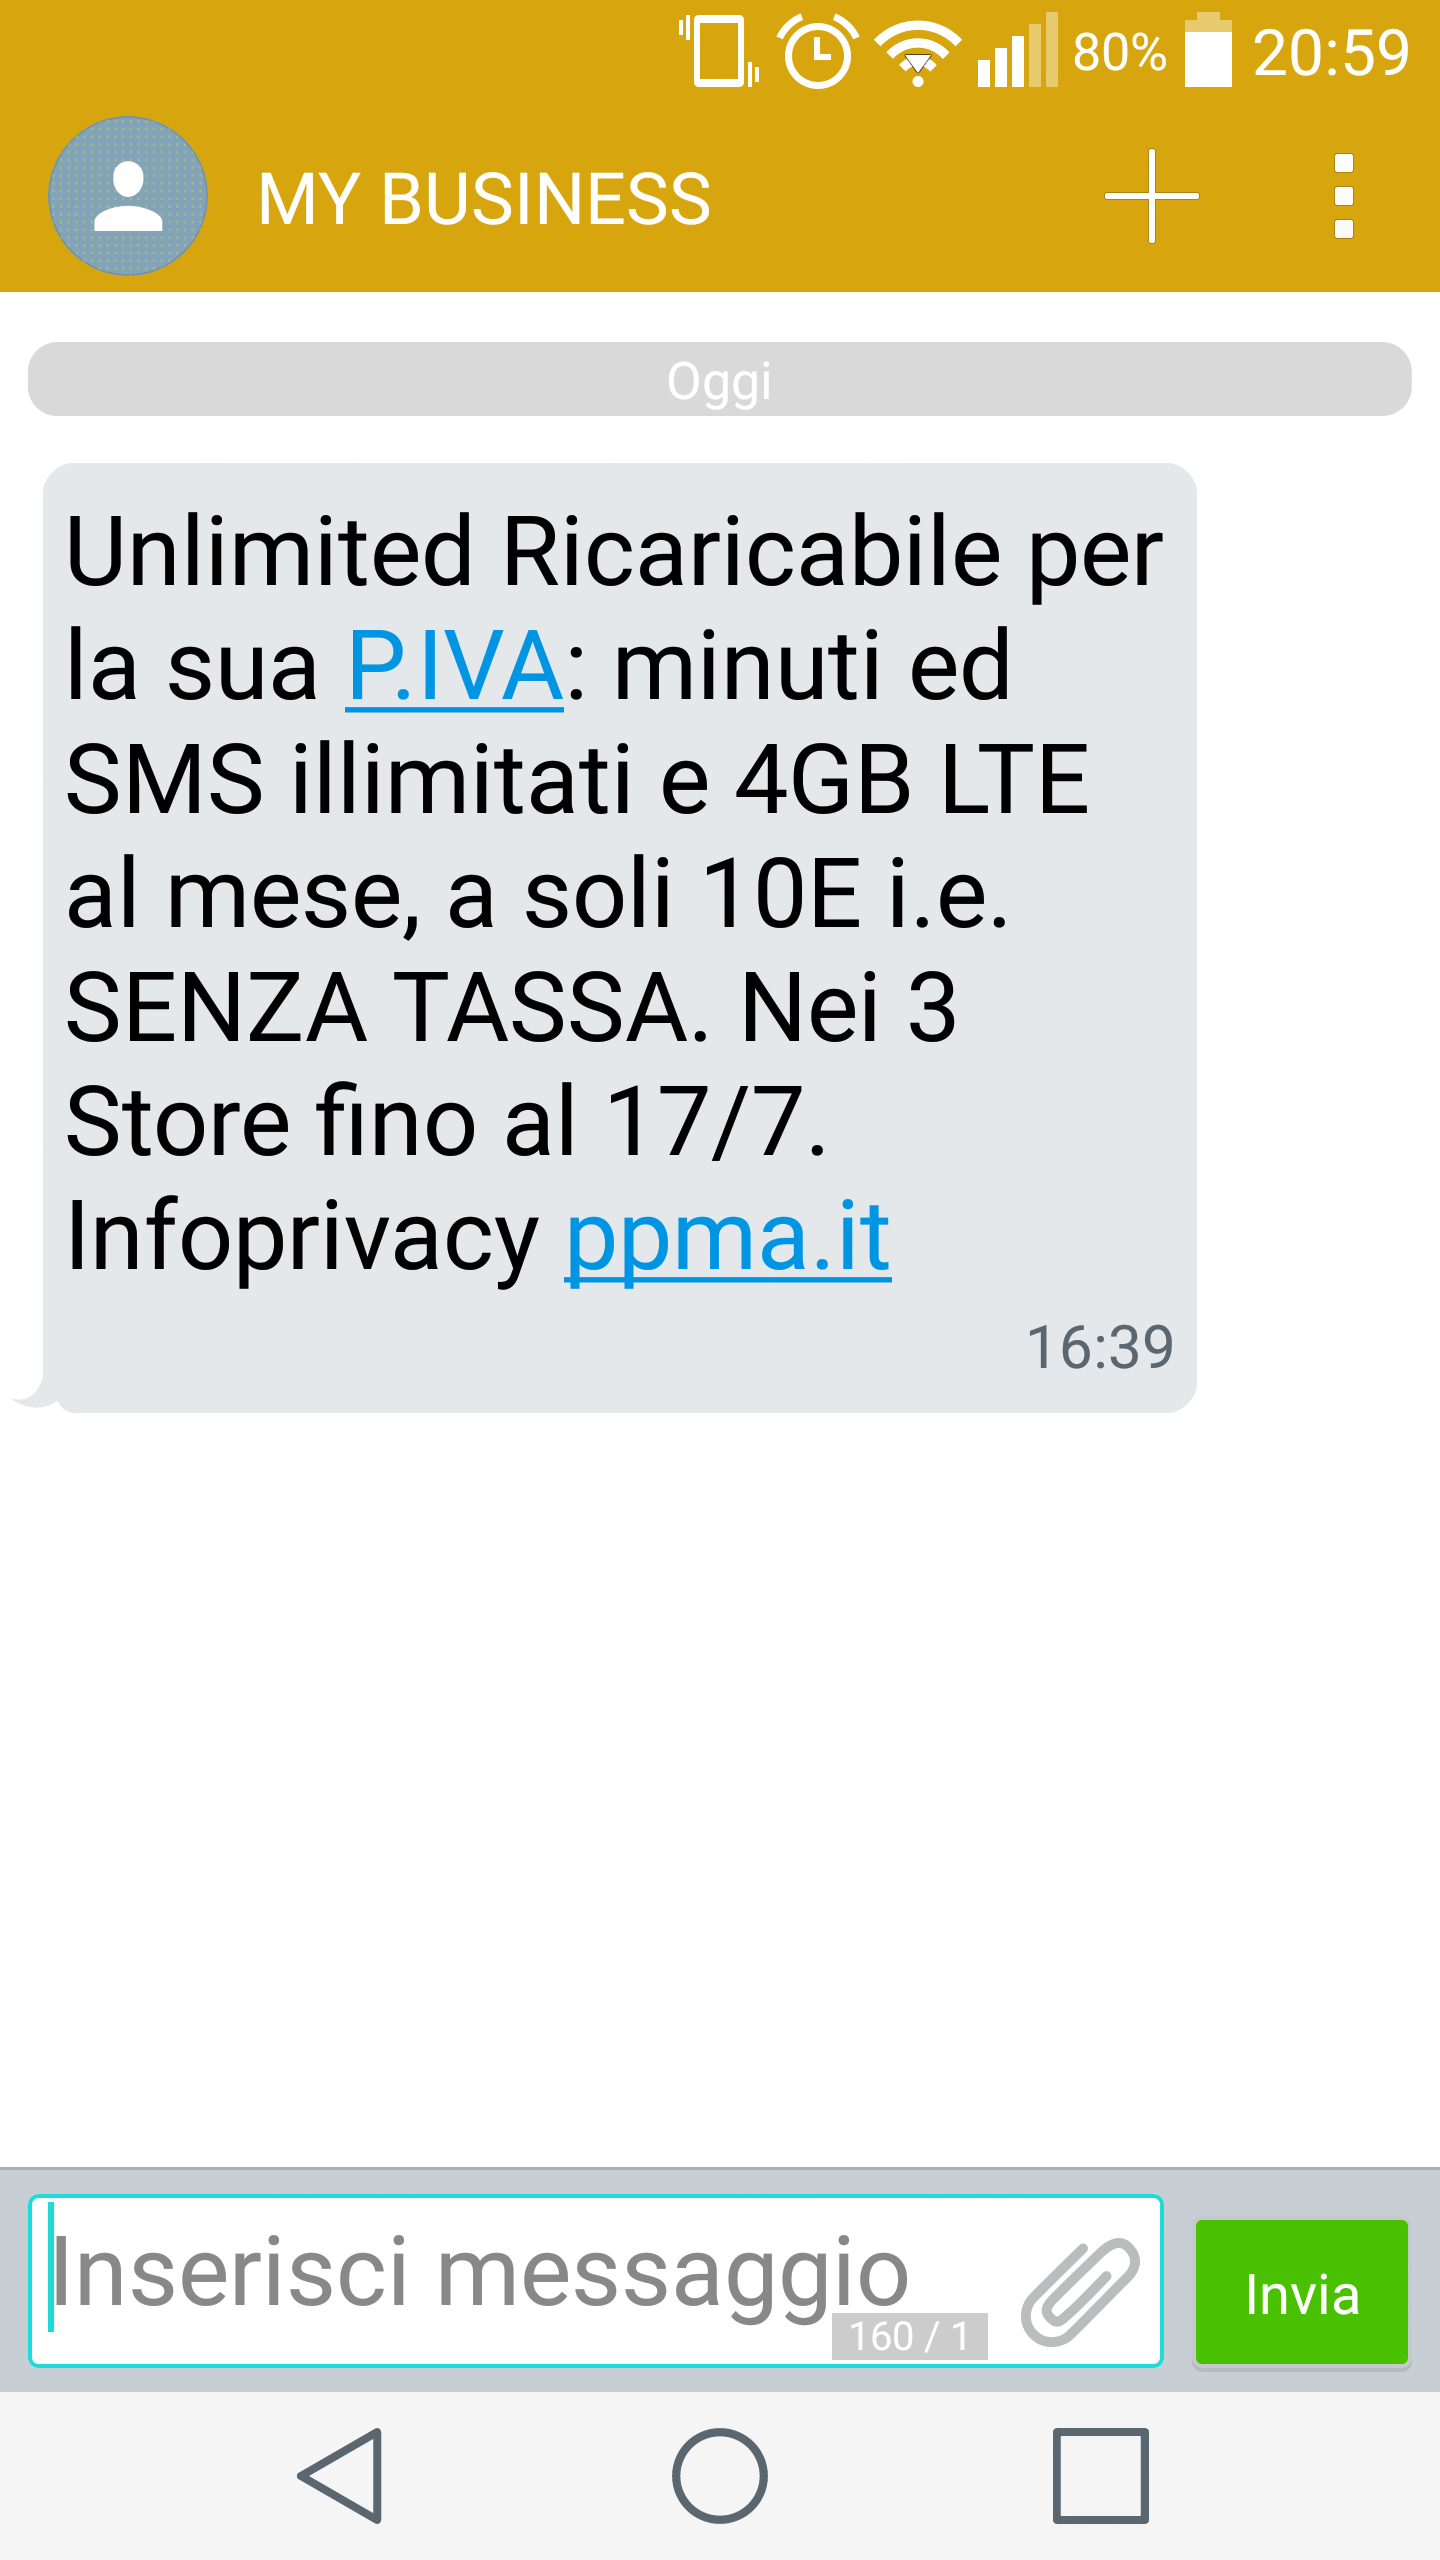 Spam message from ppma.it